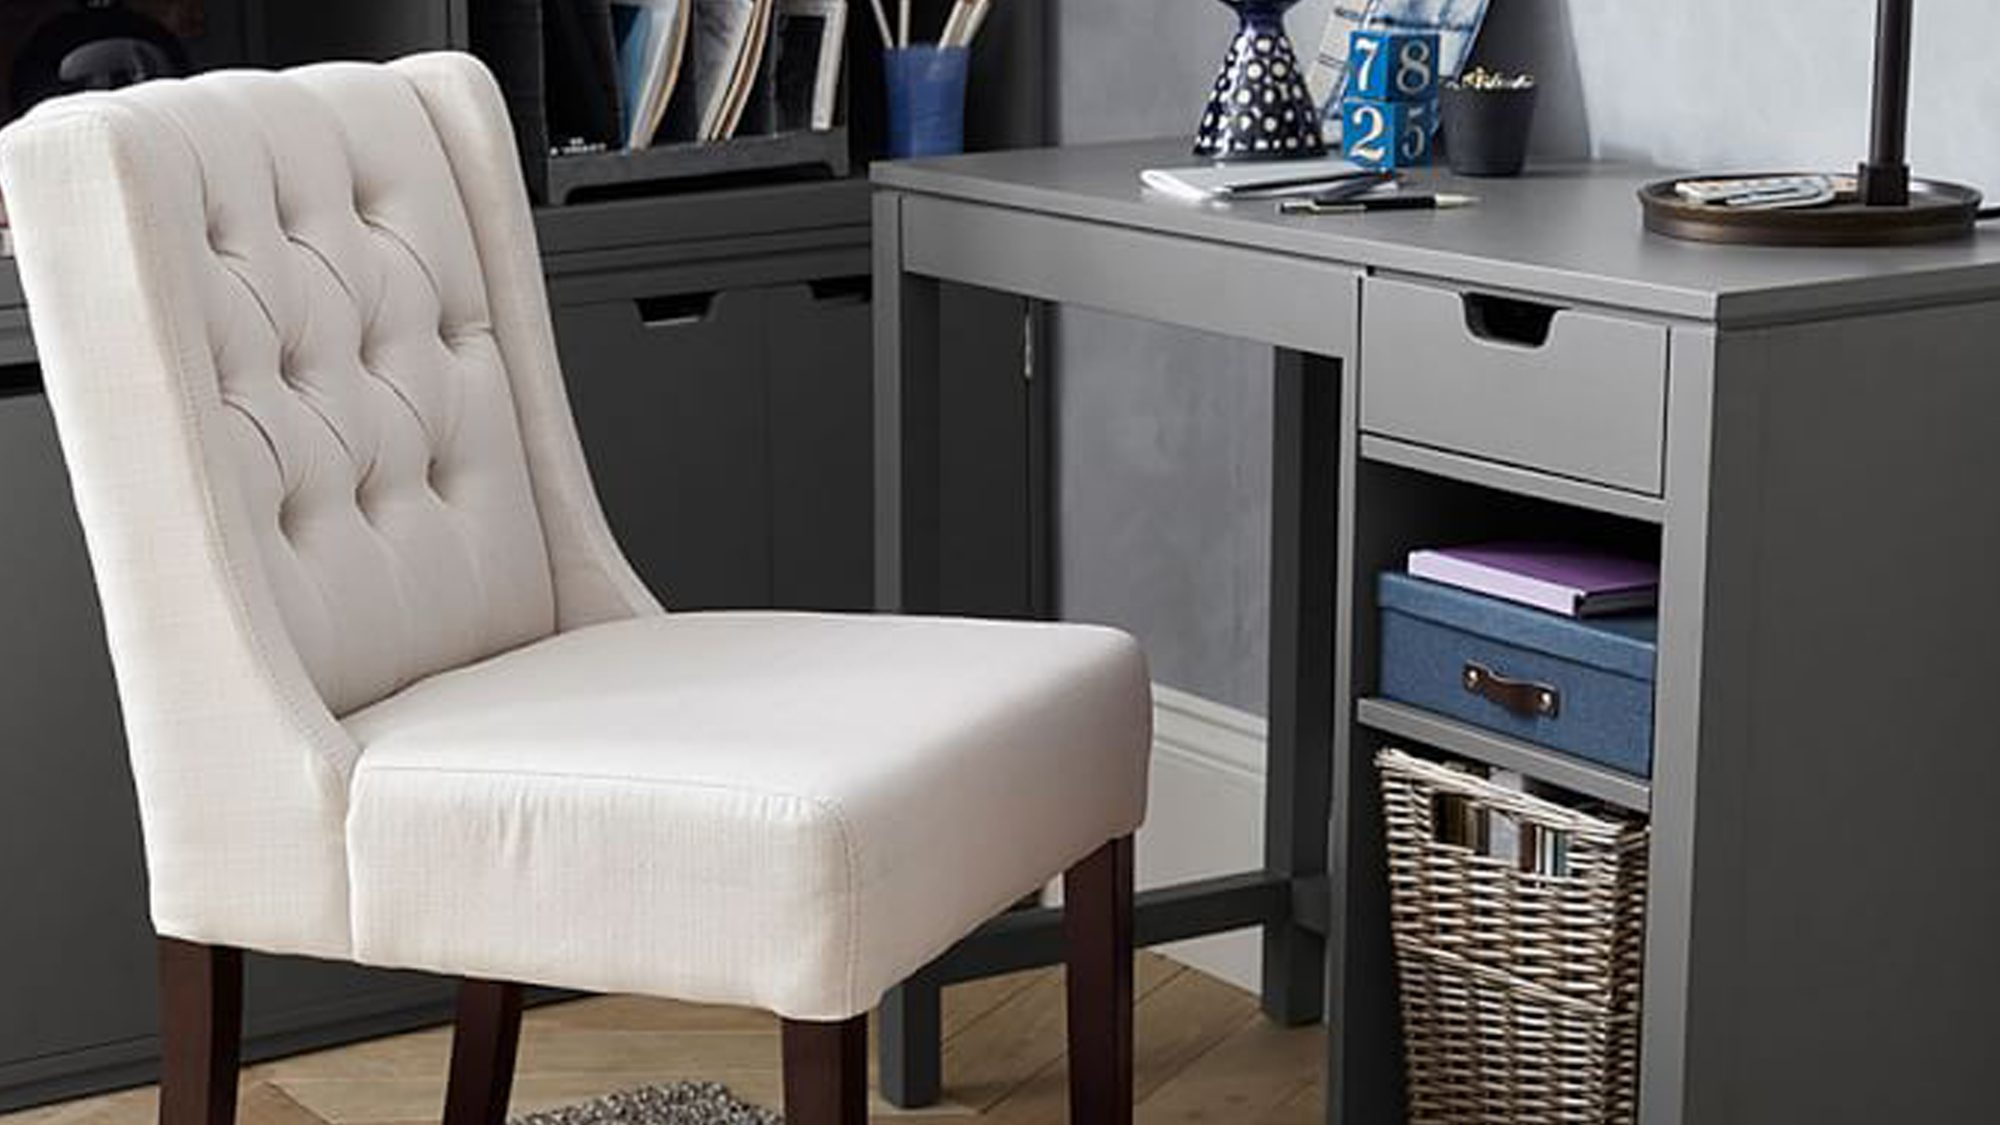 15 Best Desks For Small Spaces Real Simple